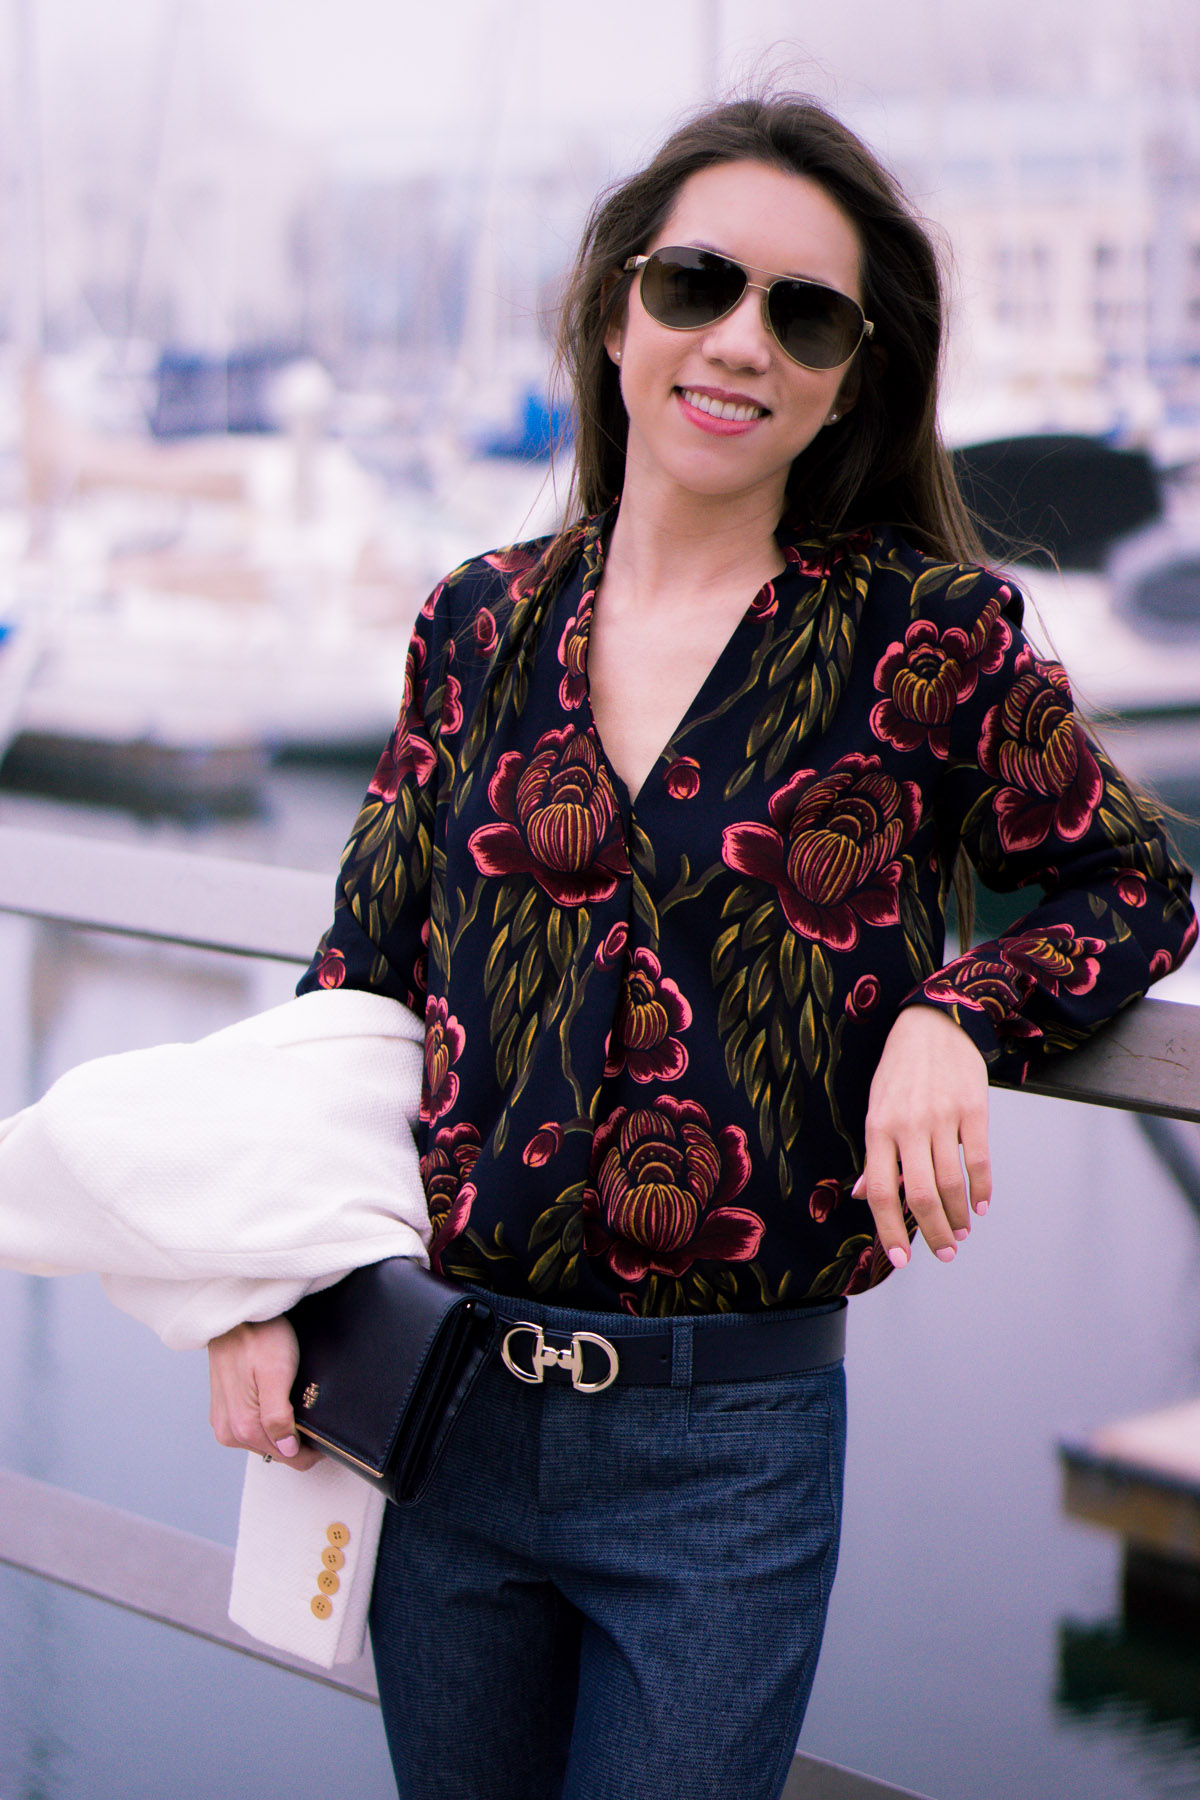 How to wear Spring Florals   Ann Taylor Garden Pleated Petite Blouse   office work date casual outfits  Target Lakitia Sandals   Paige white jeans   J. Crew shorts   Banana Republic Sloan Pants   Talbots horsebit belt clasp     Tory Burch Chain Wallet